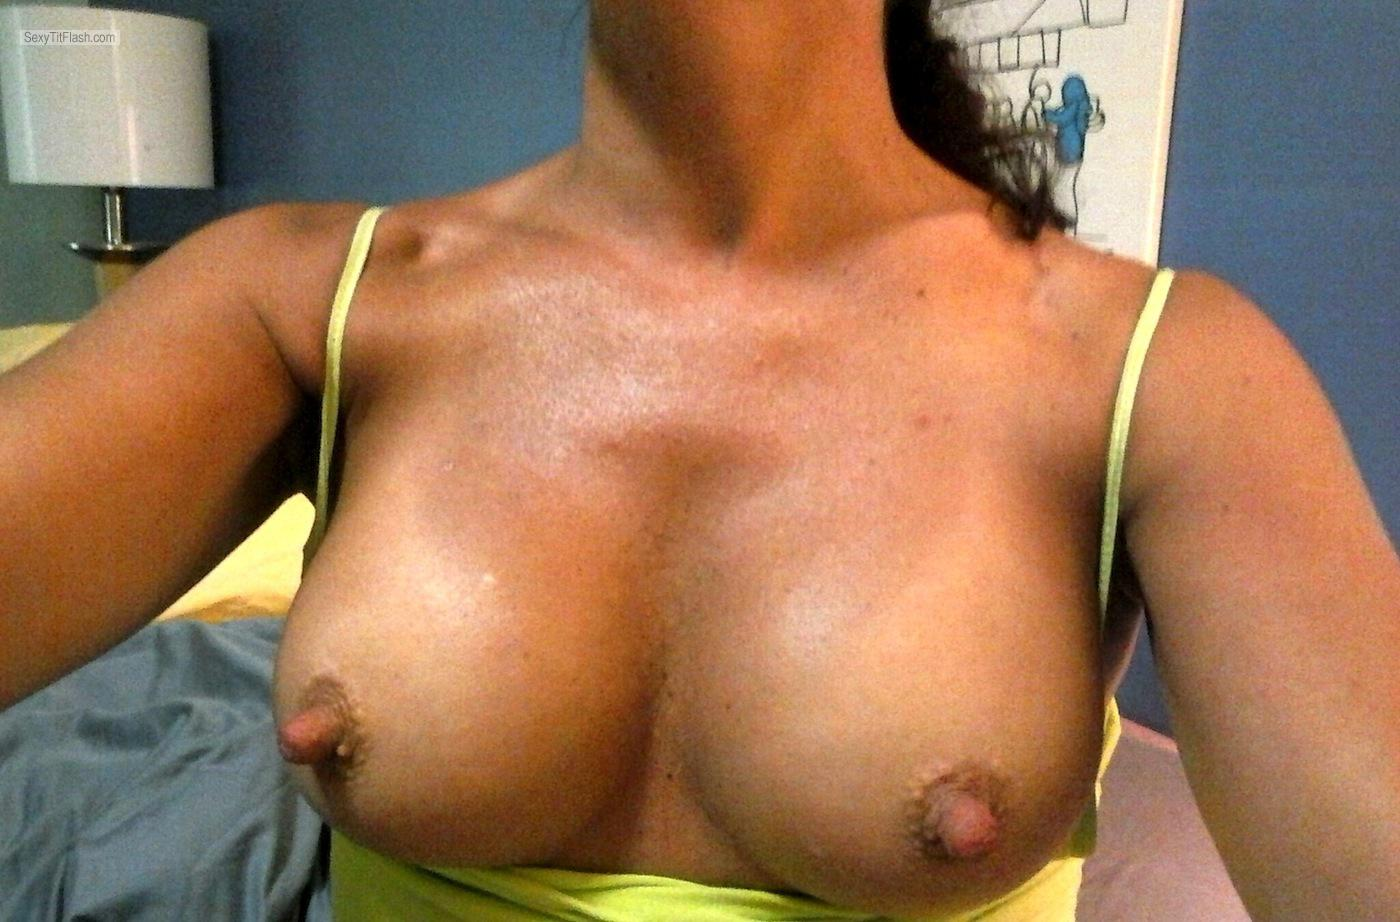 Tit Flash: My Medium Tits (Selfie) - Long Nipple Princess from United States